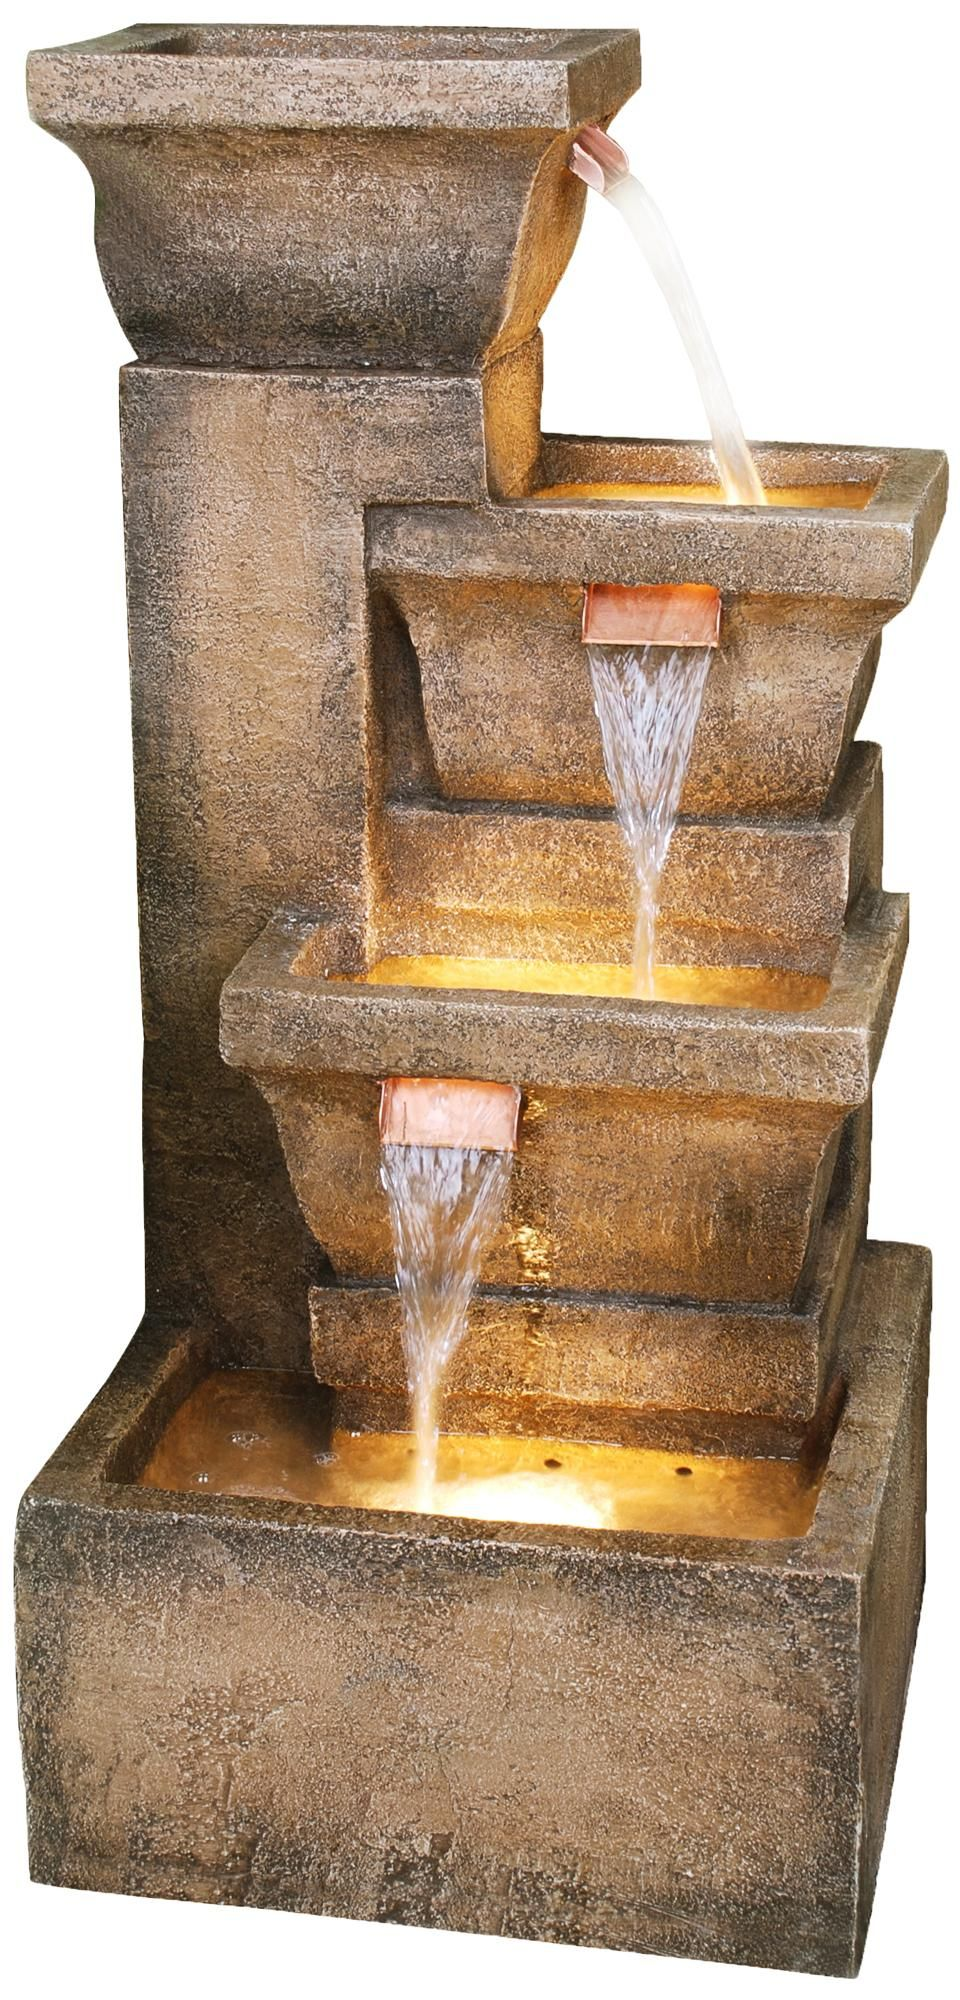 Indoor Lighted Water Fountains Ashboro lighted indoor outdoor 33 high water fountain outdoor ashboro lighted indoor outdoor water fountain workwithnaturefo